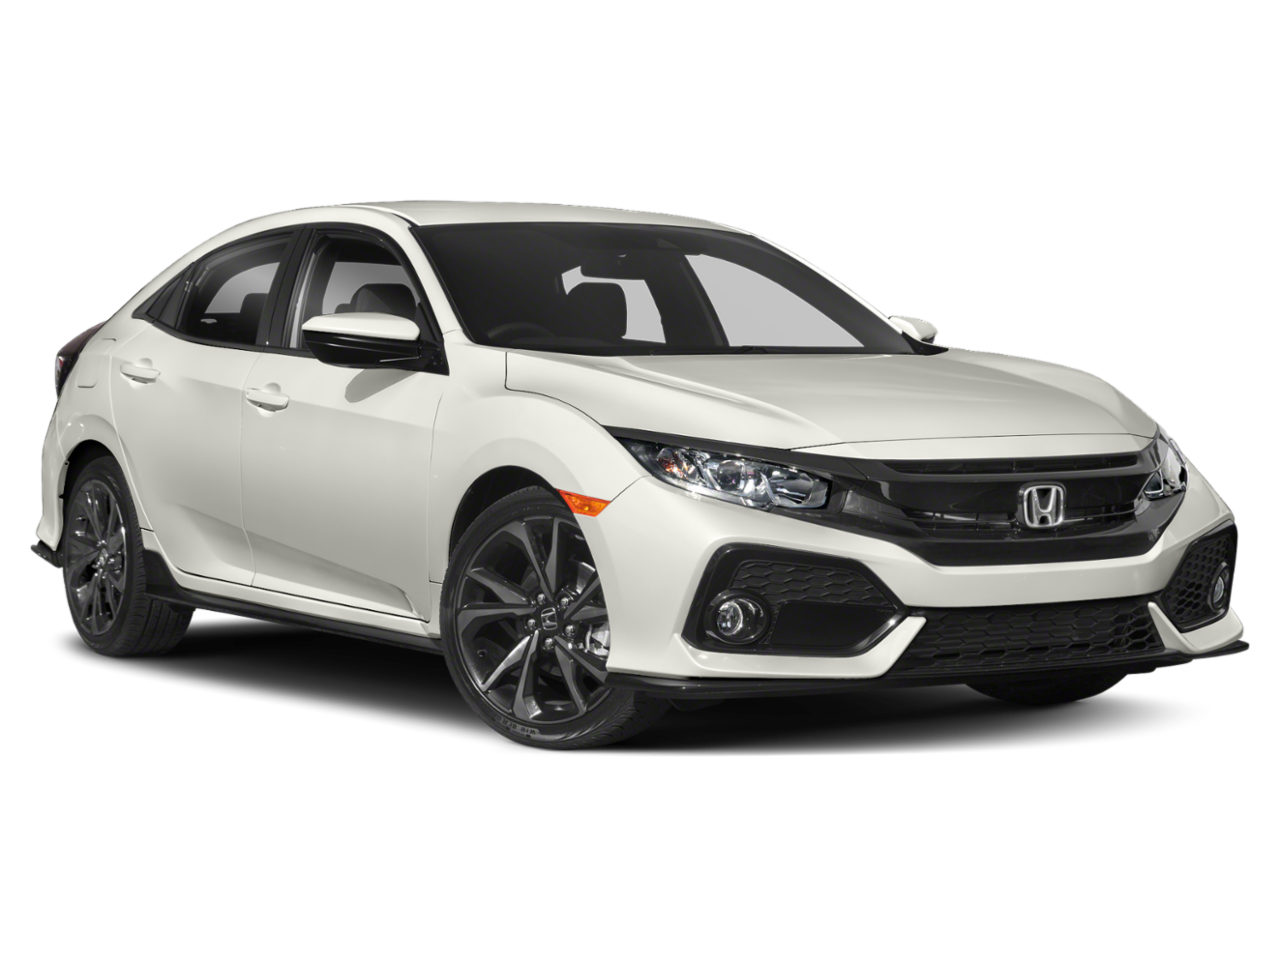 New 2019 Honda Civic Hatchback Sport CVT